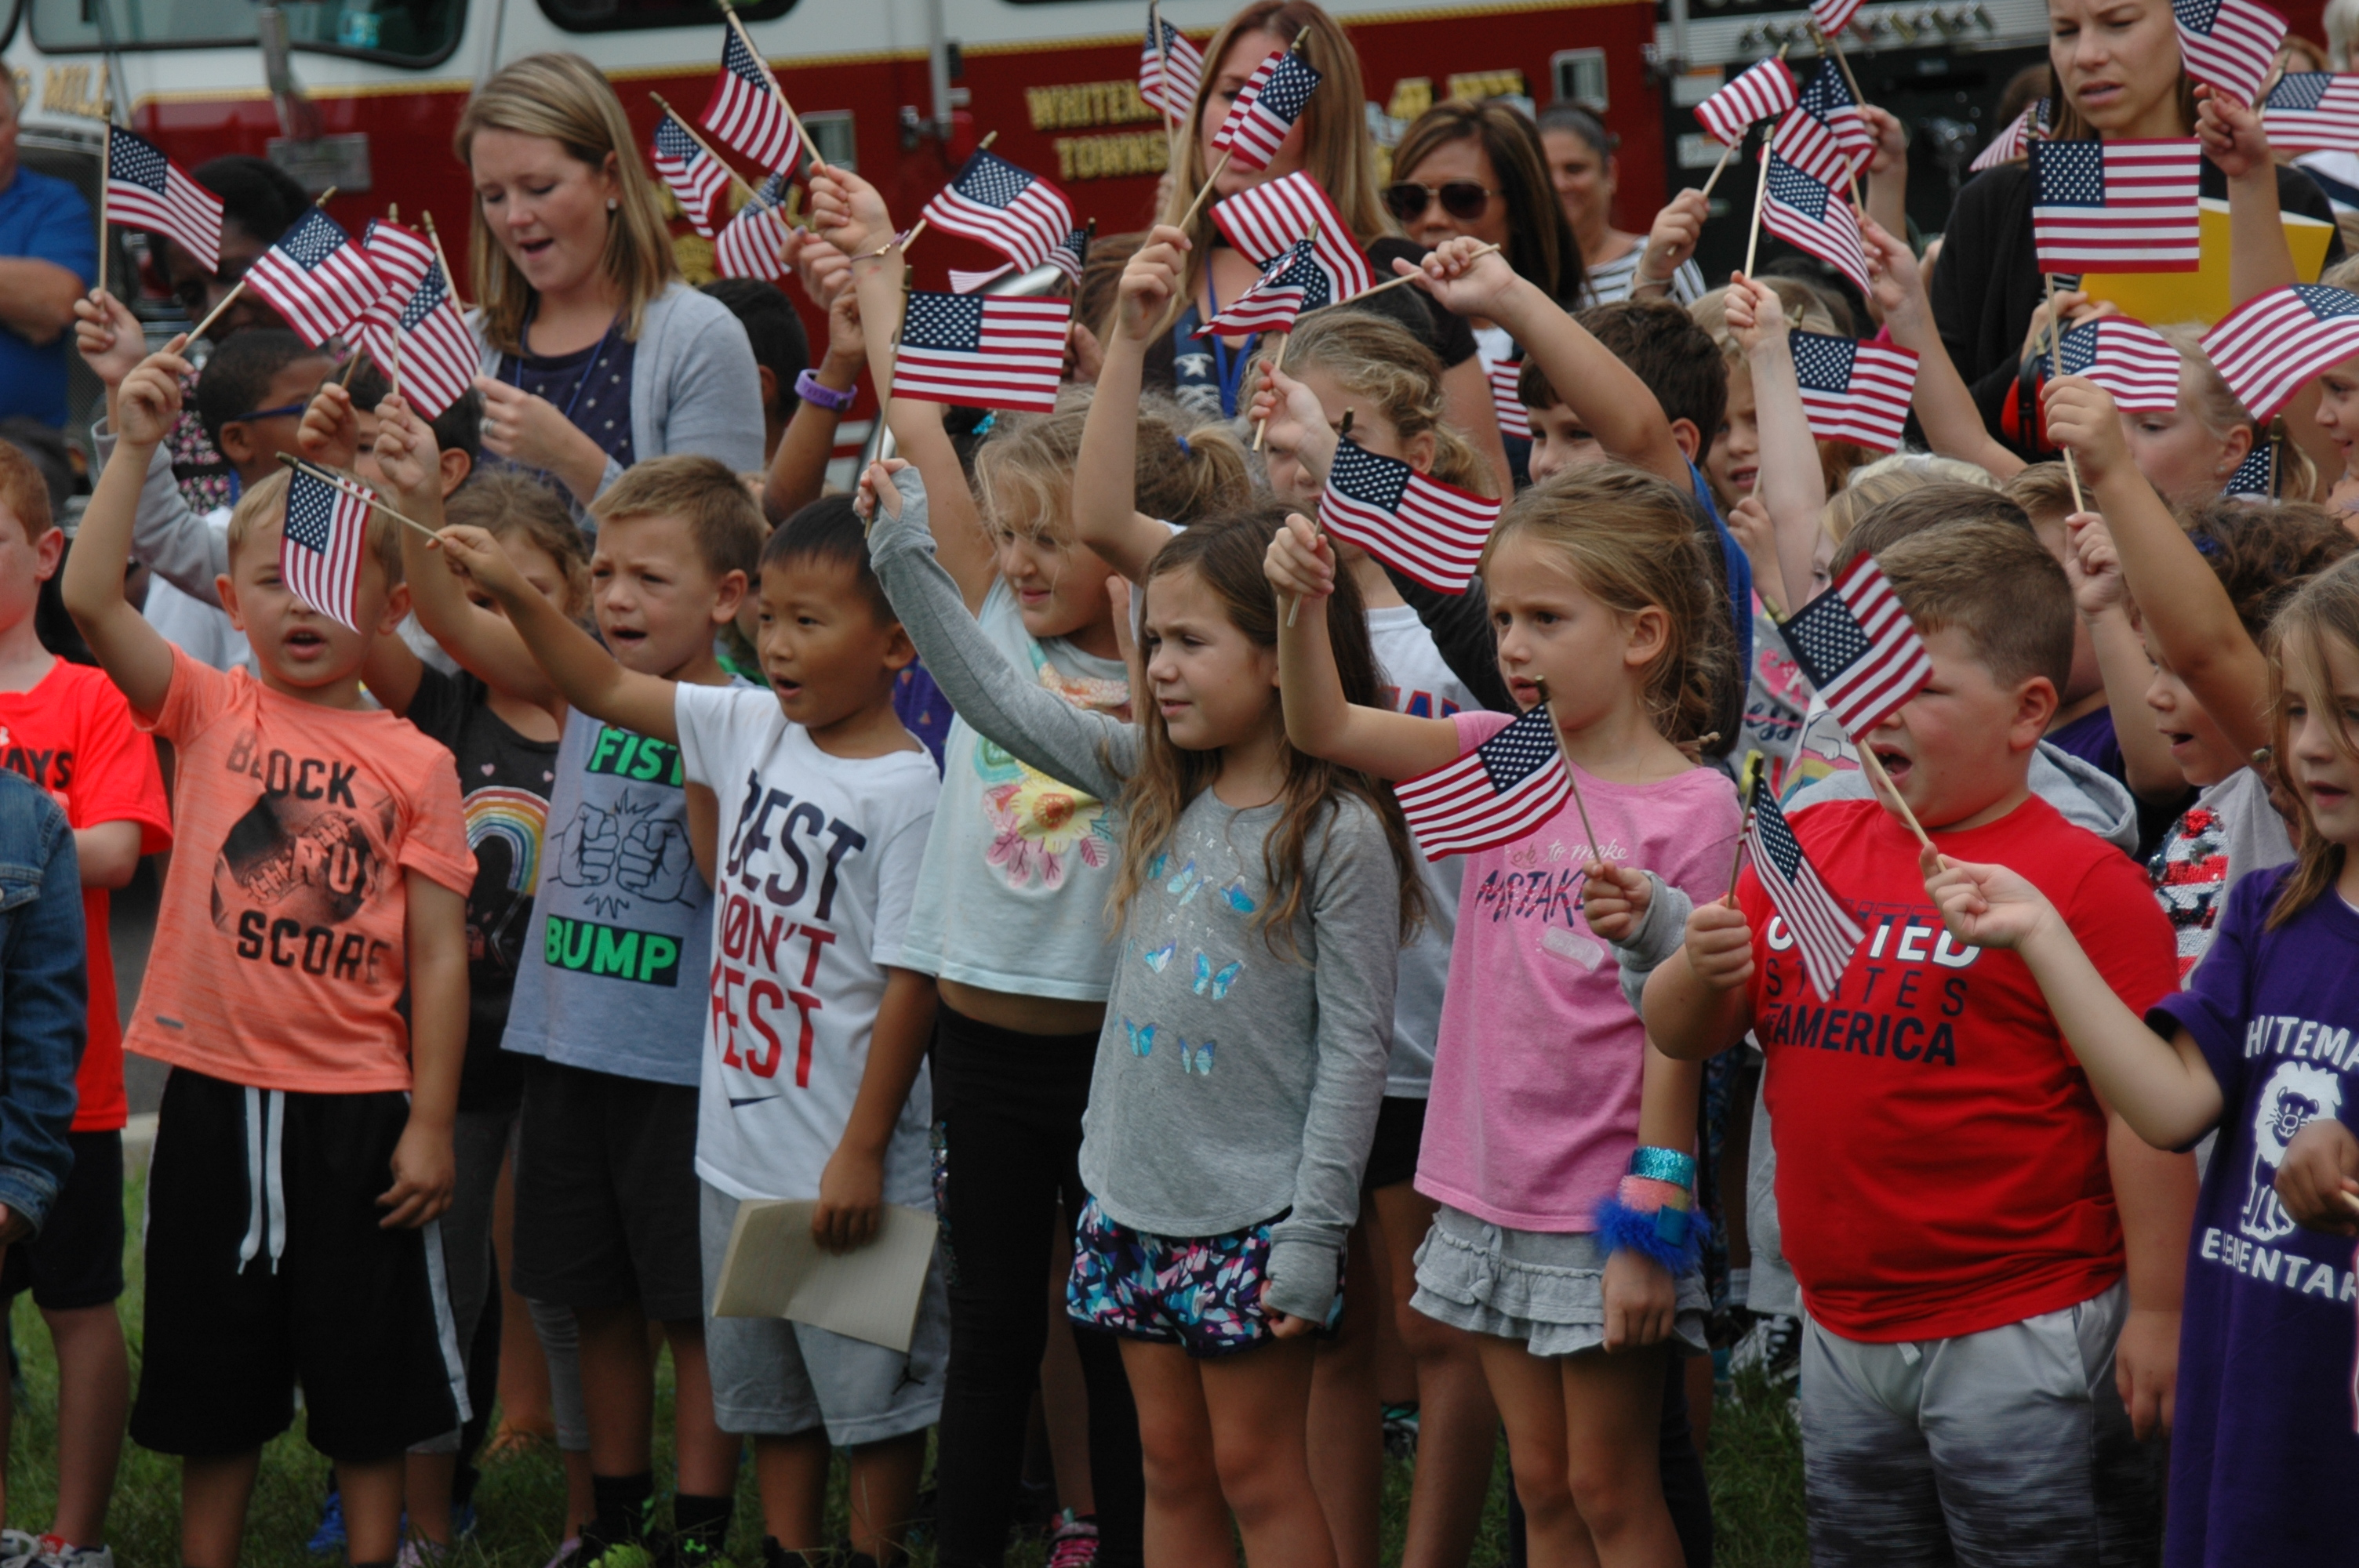 Group of children singing while waving small American flags